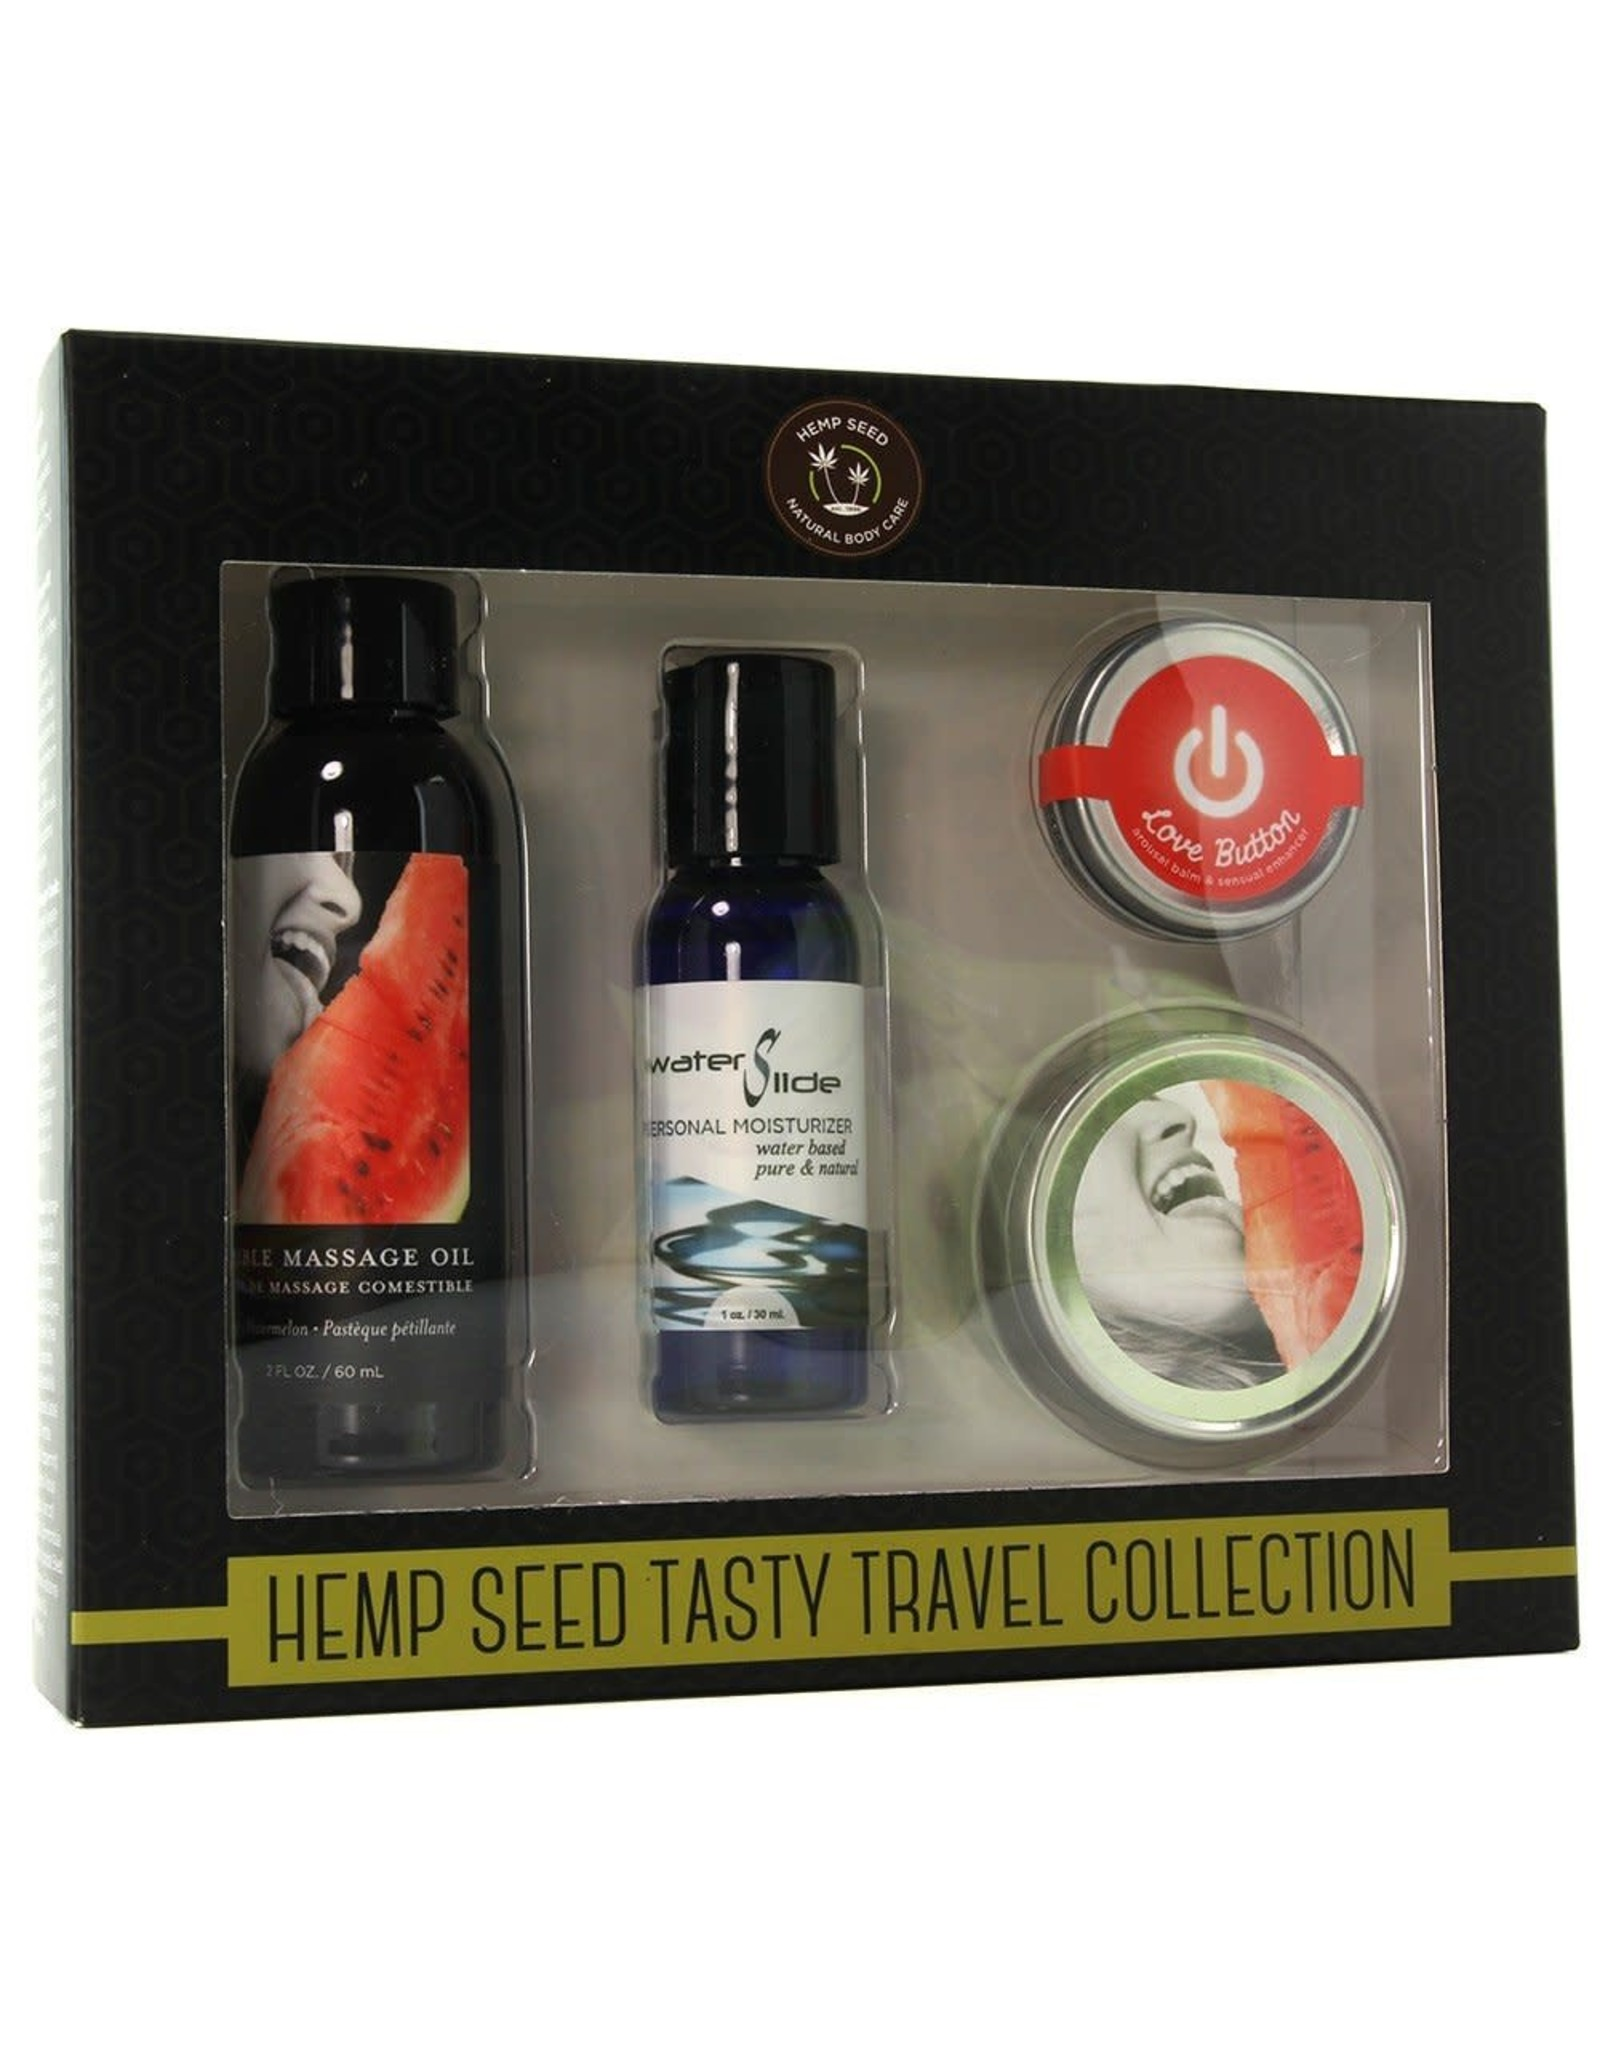 EARTHLY BODY - HEMP SEED TASTY TRAVEL COLLECTION - WATERMELON